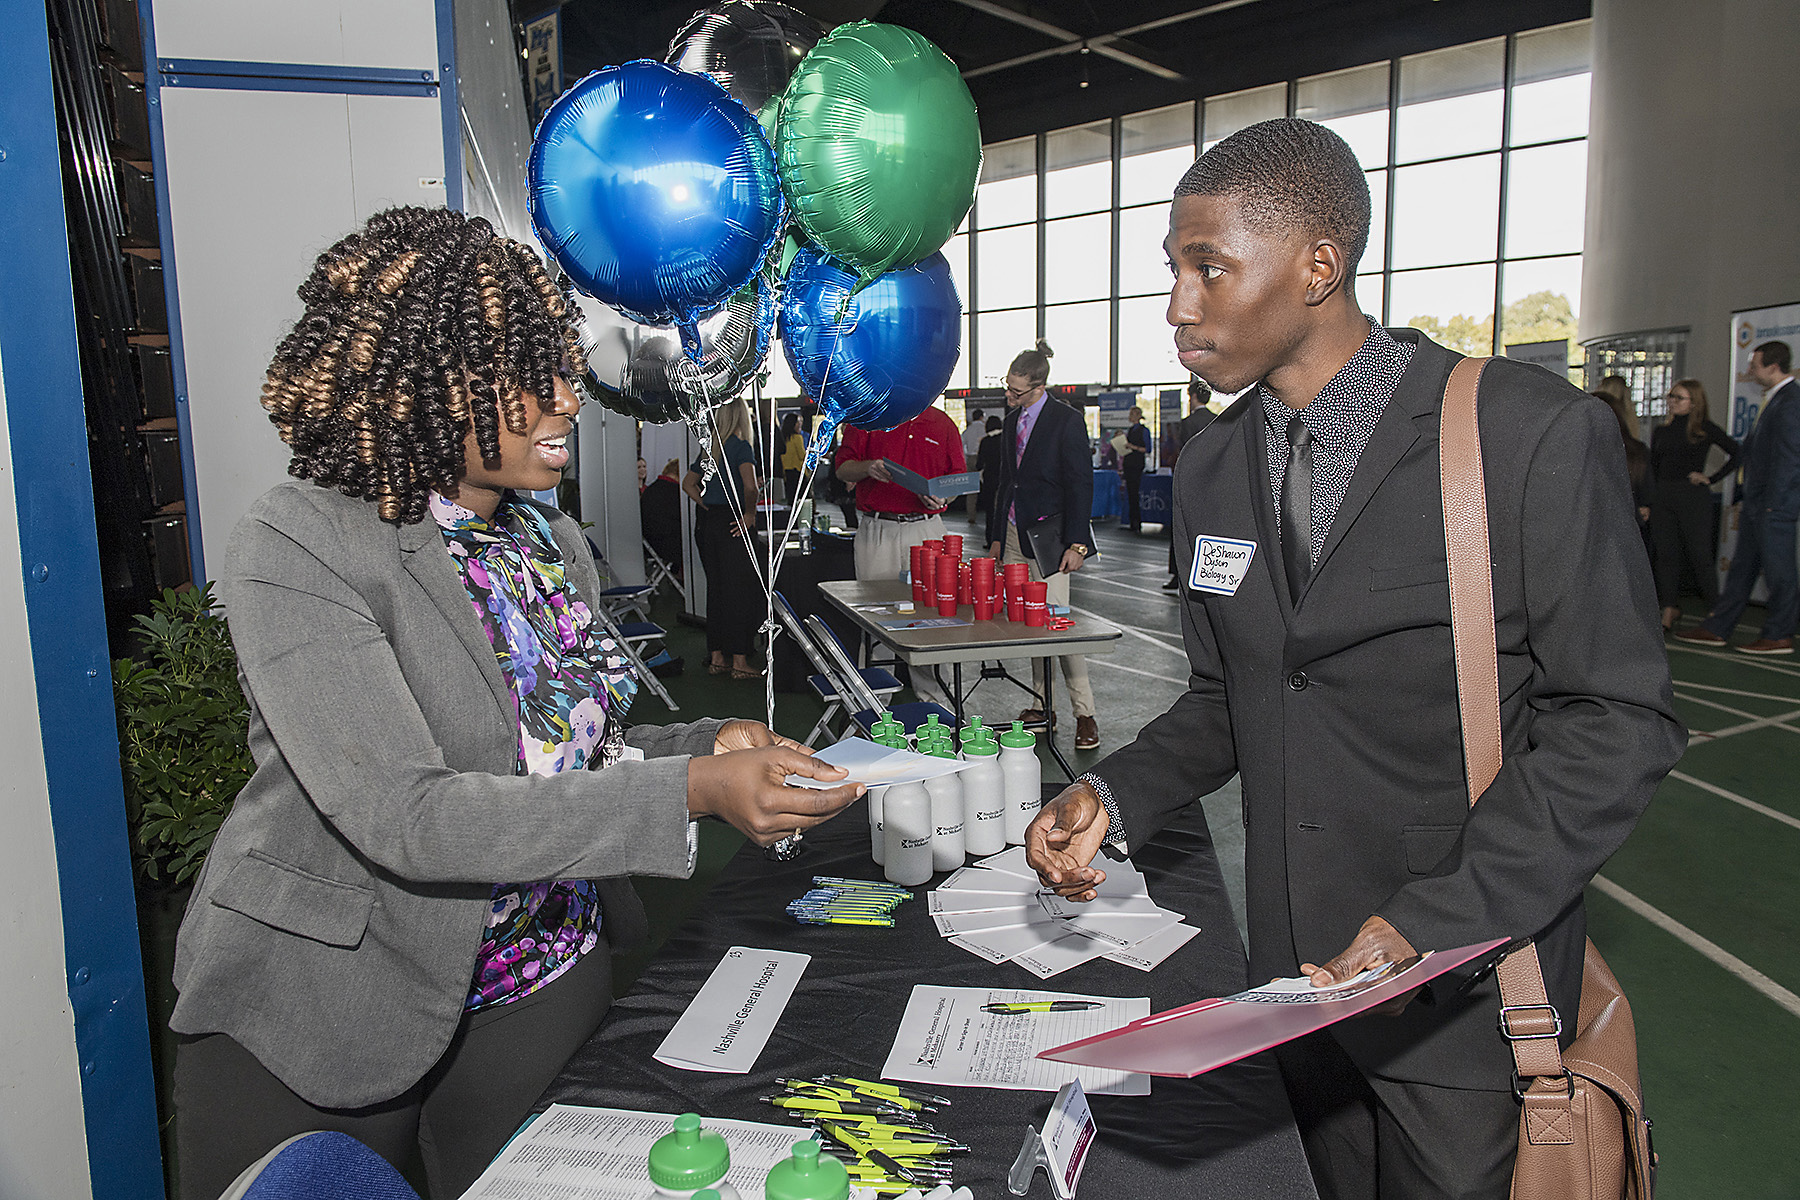 Area employers are invited to showcase their organizations to hundreds of job-seeking students and alumni at this year's upcoming Fall Career Fair -- the university's largest recruiting event and only campuswide career fair.